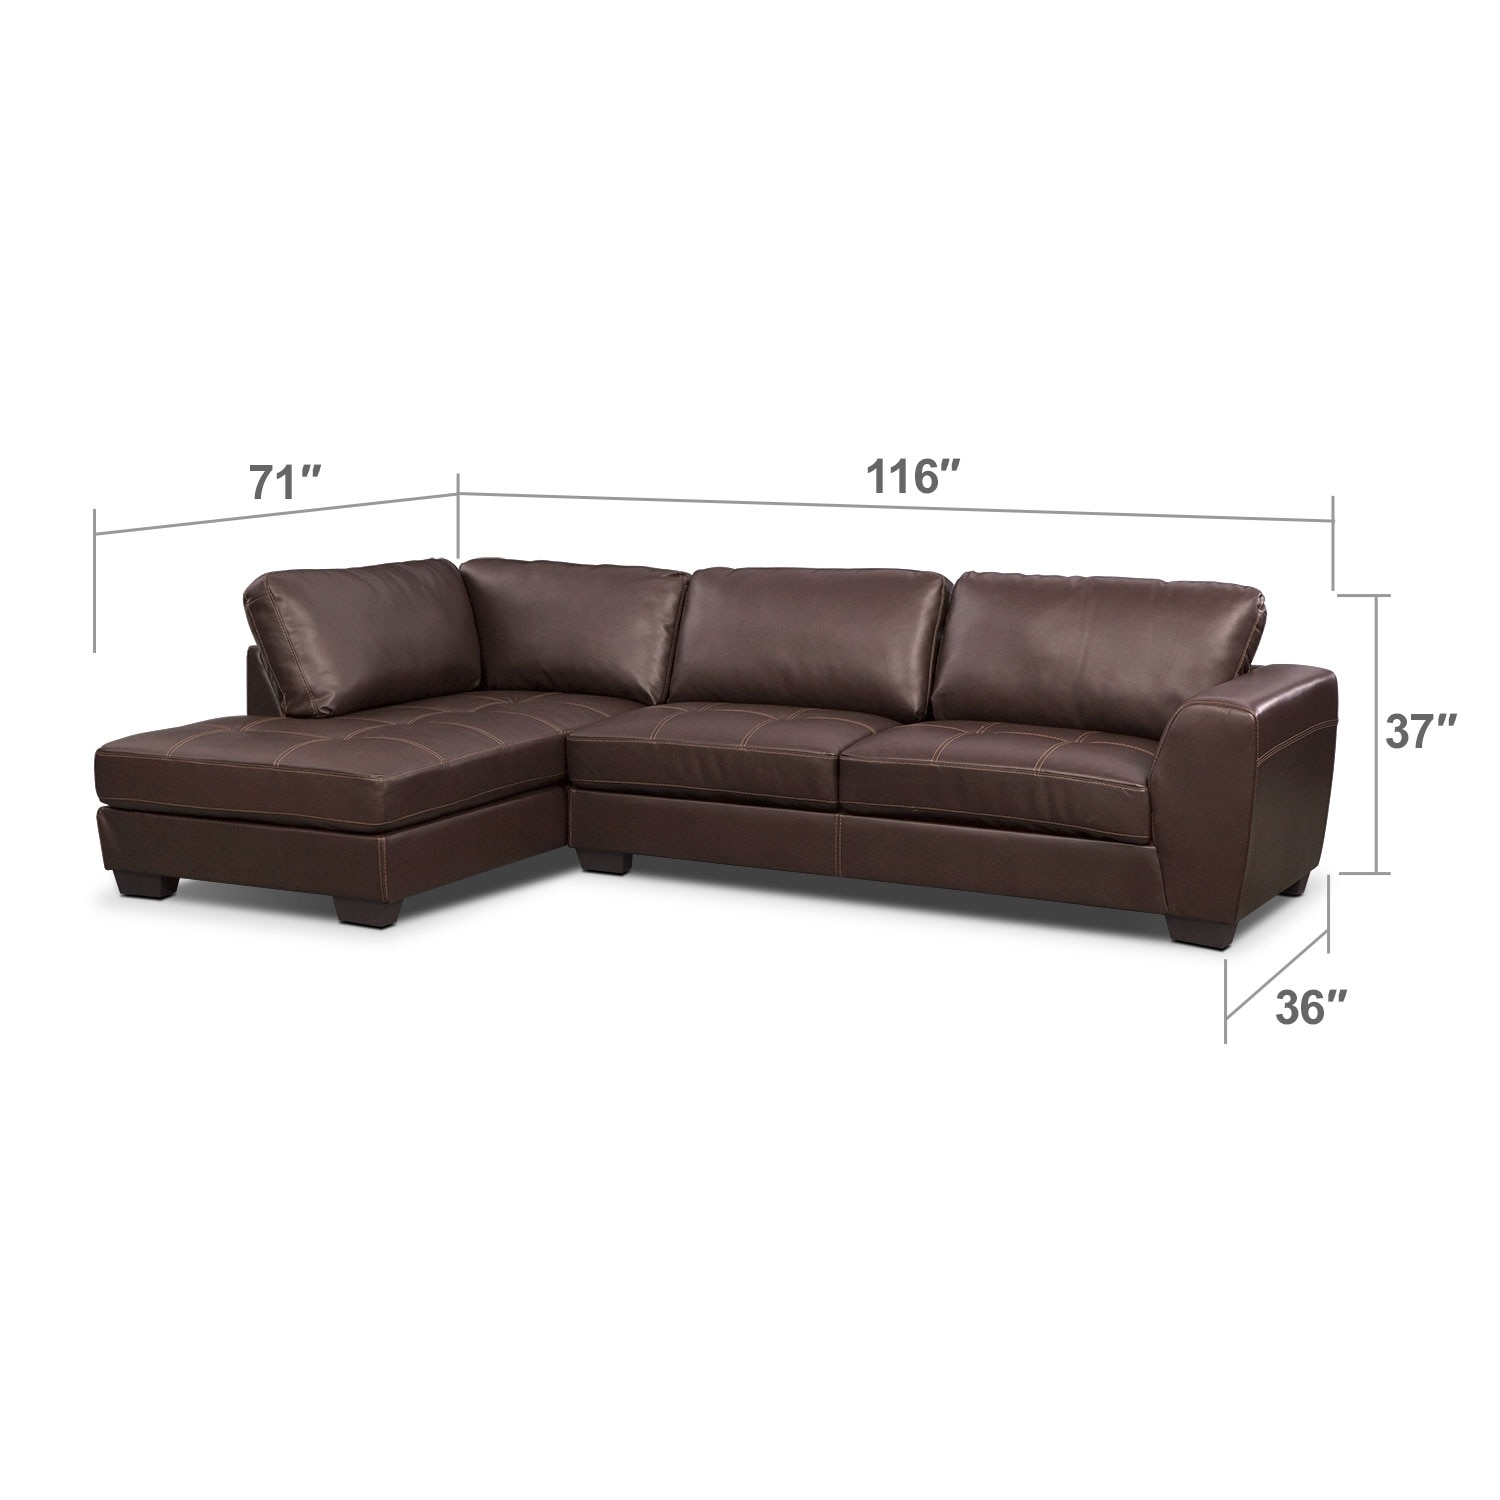 Living Room Furniture - Lyon Brown 2 Pc. Sectional